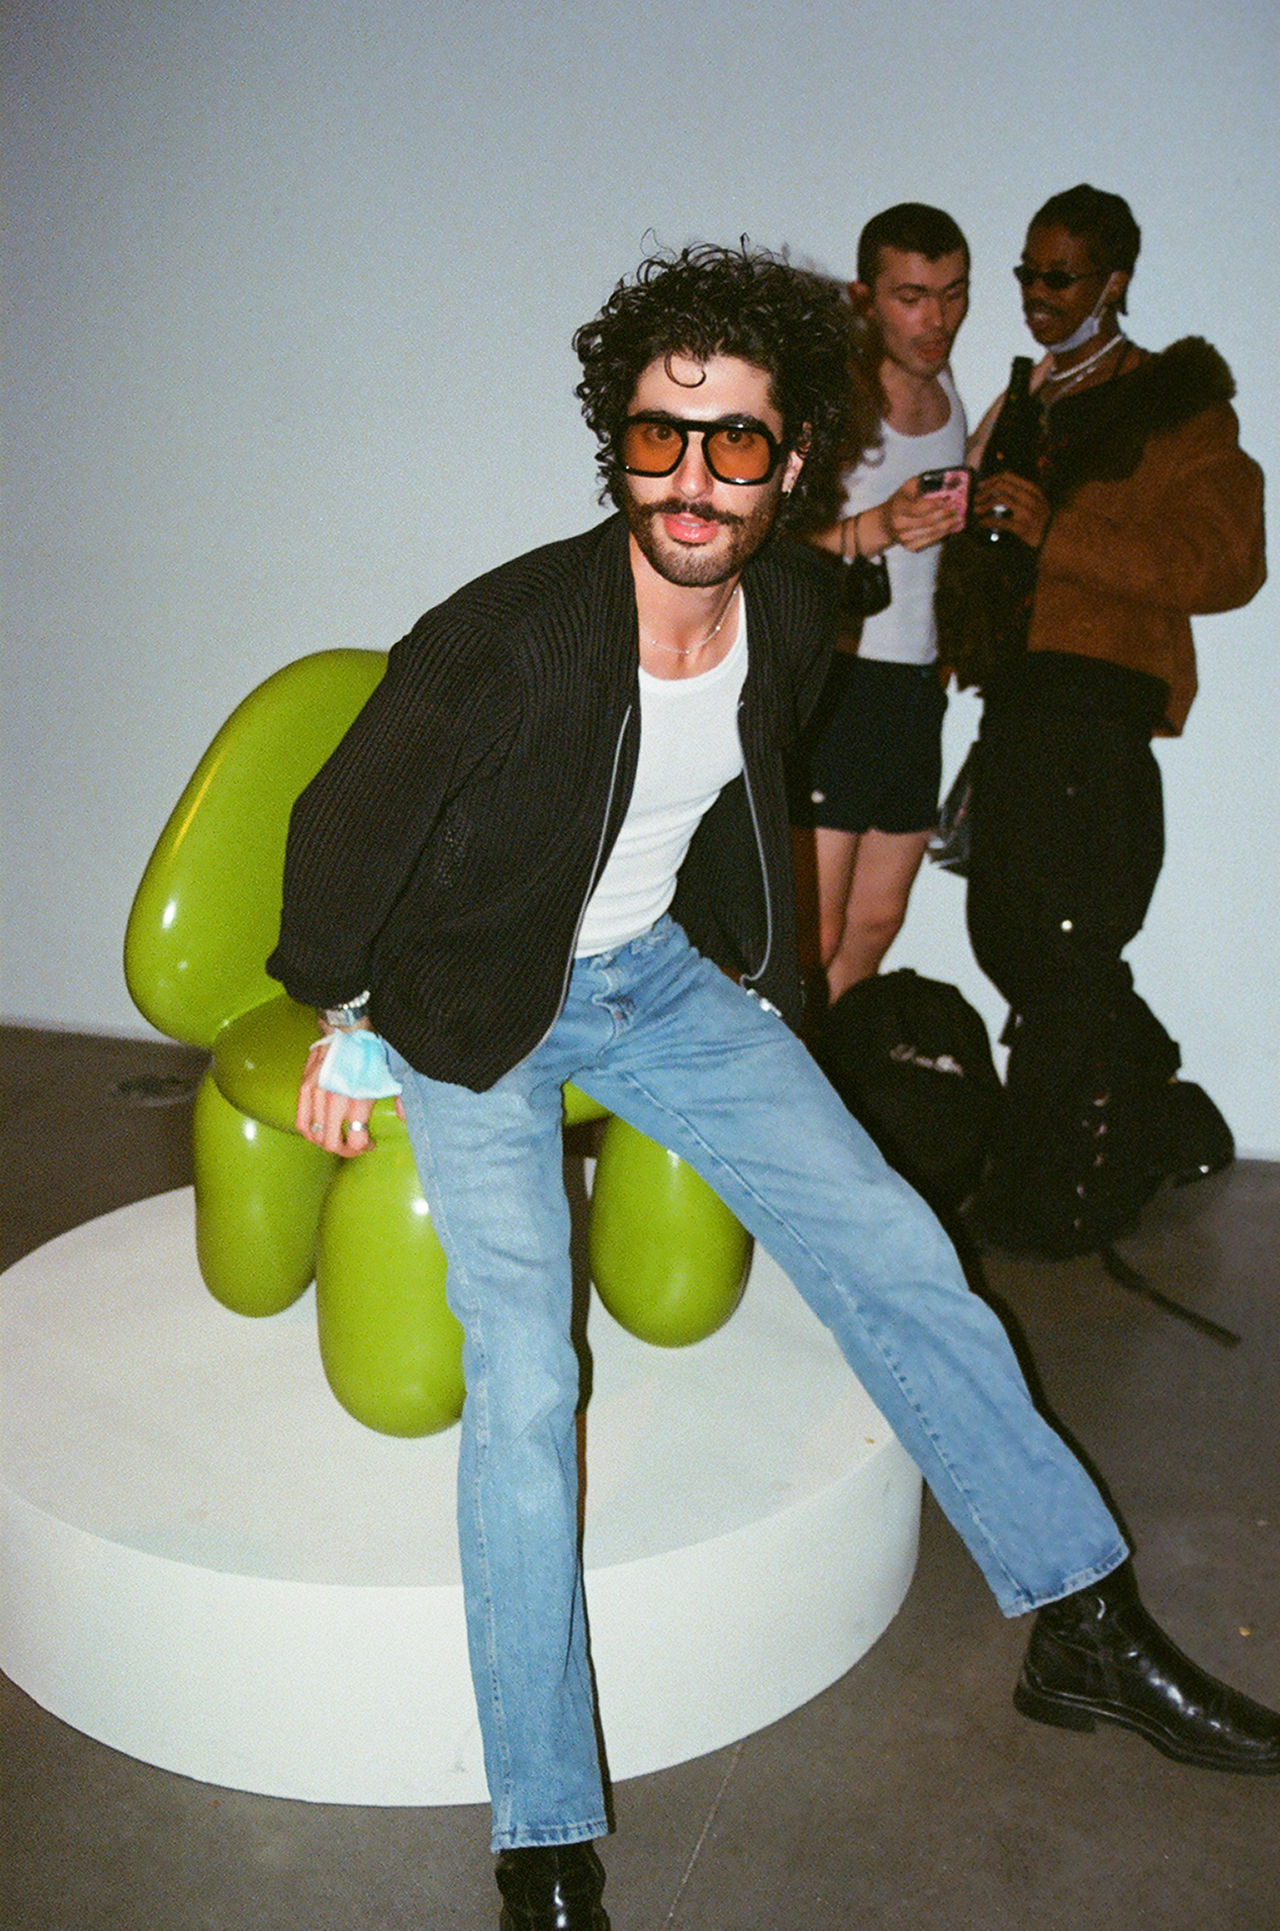 light-skinned man with dark hair wearing a leather jacket, jeans, and sunglasses